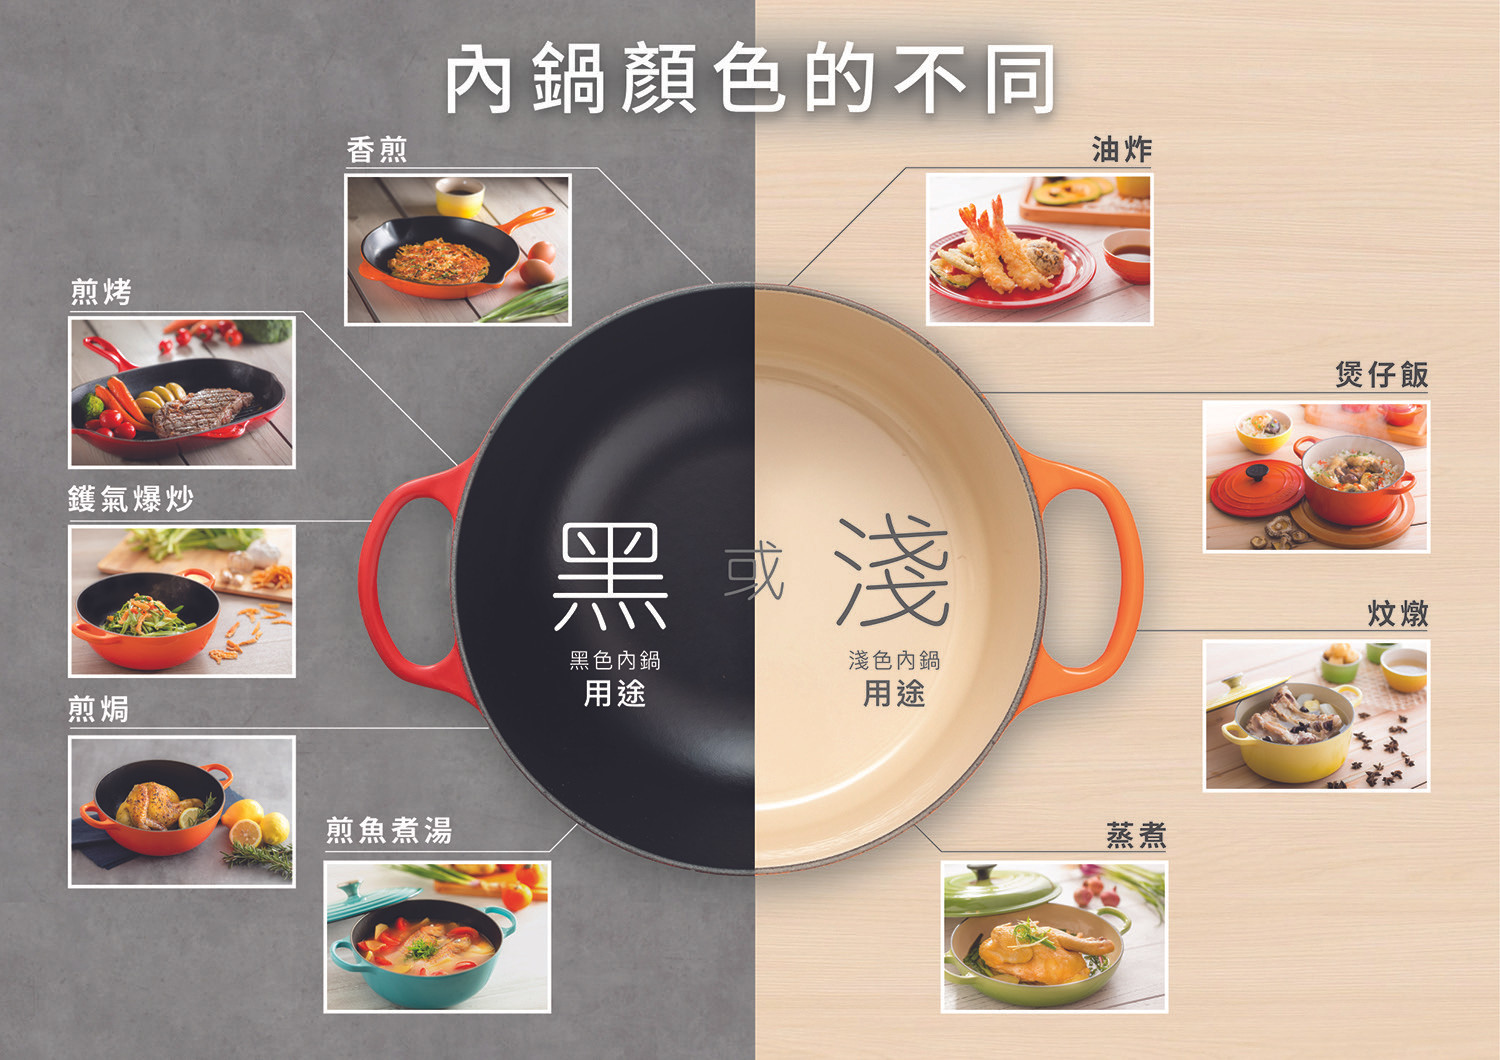 LeCreuset_Promotion_Material_Why_Board_0